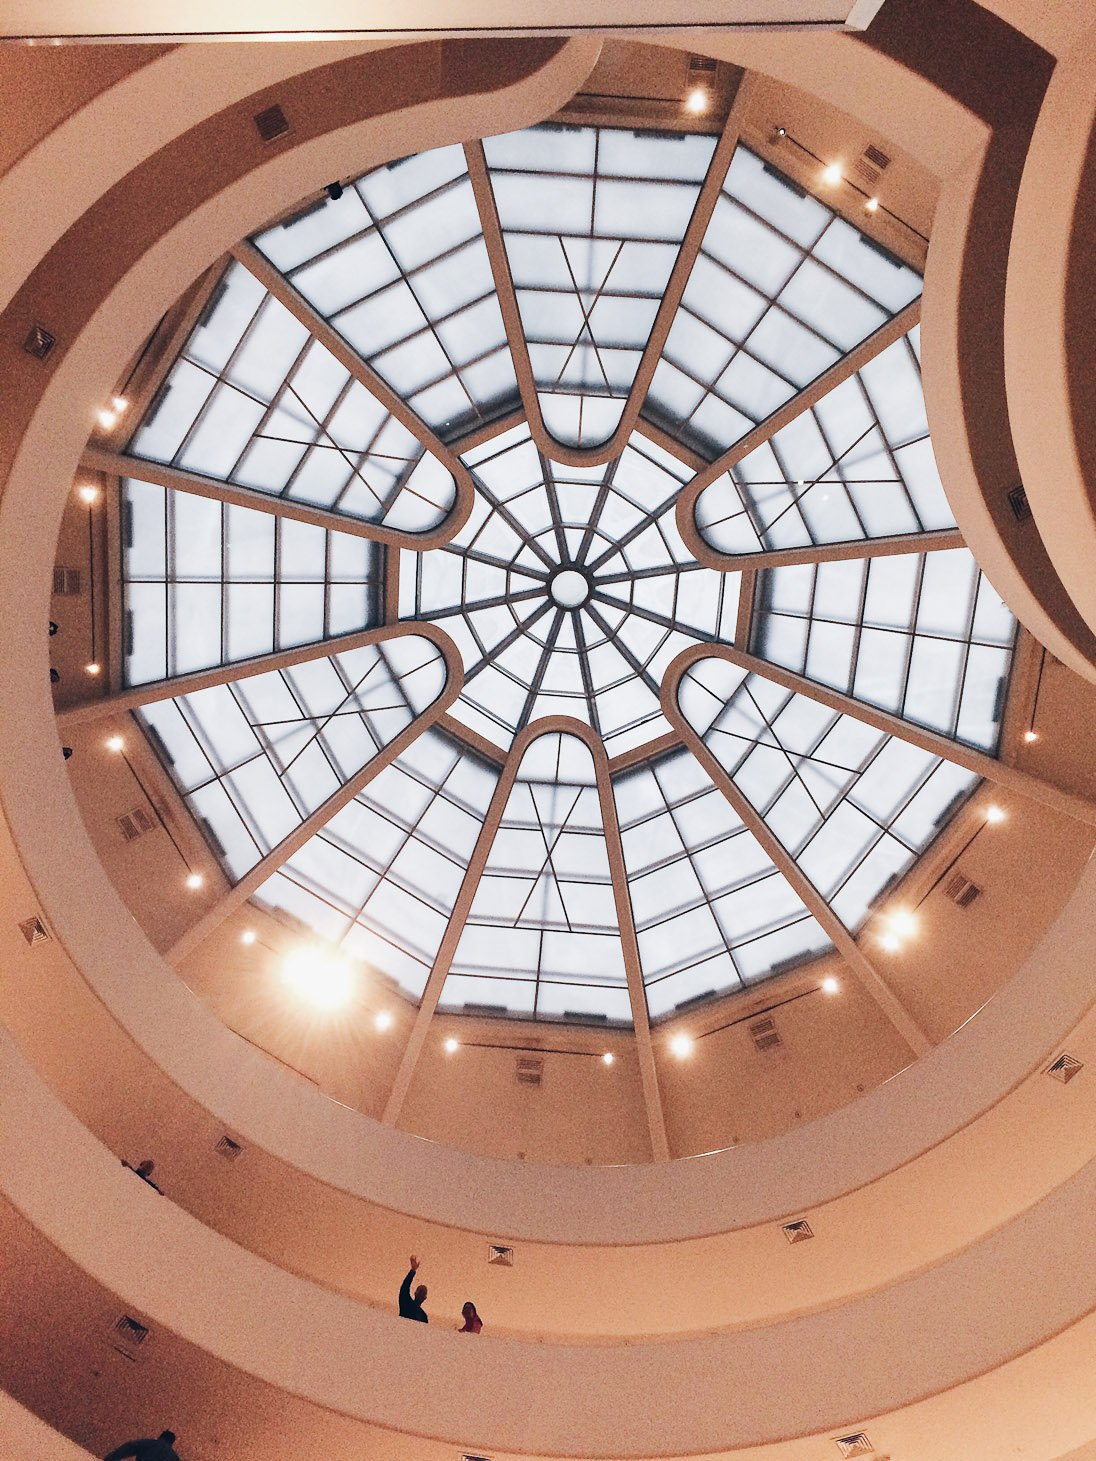 guggenheim museum upper east side art gallery new york city nyc sher shershegoes.com sher she goes